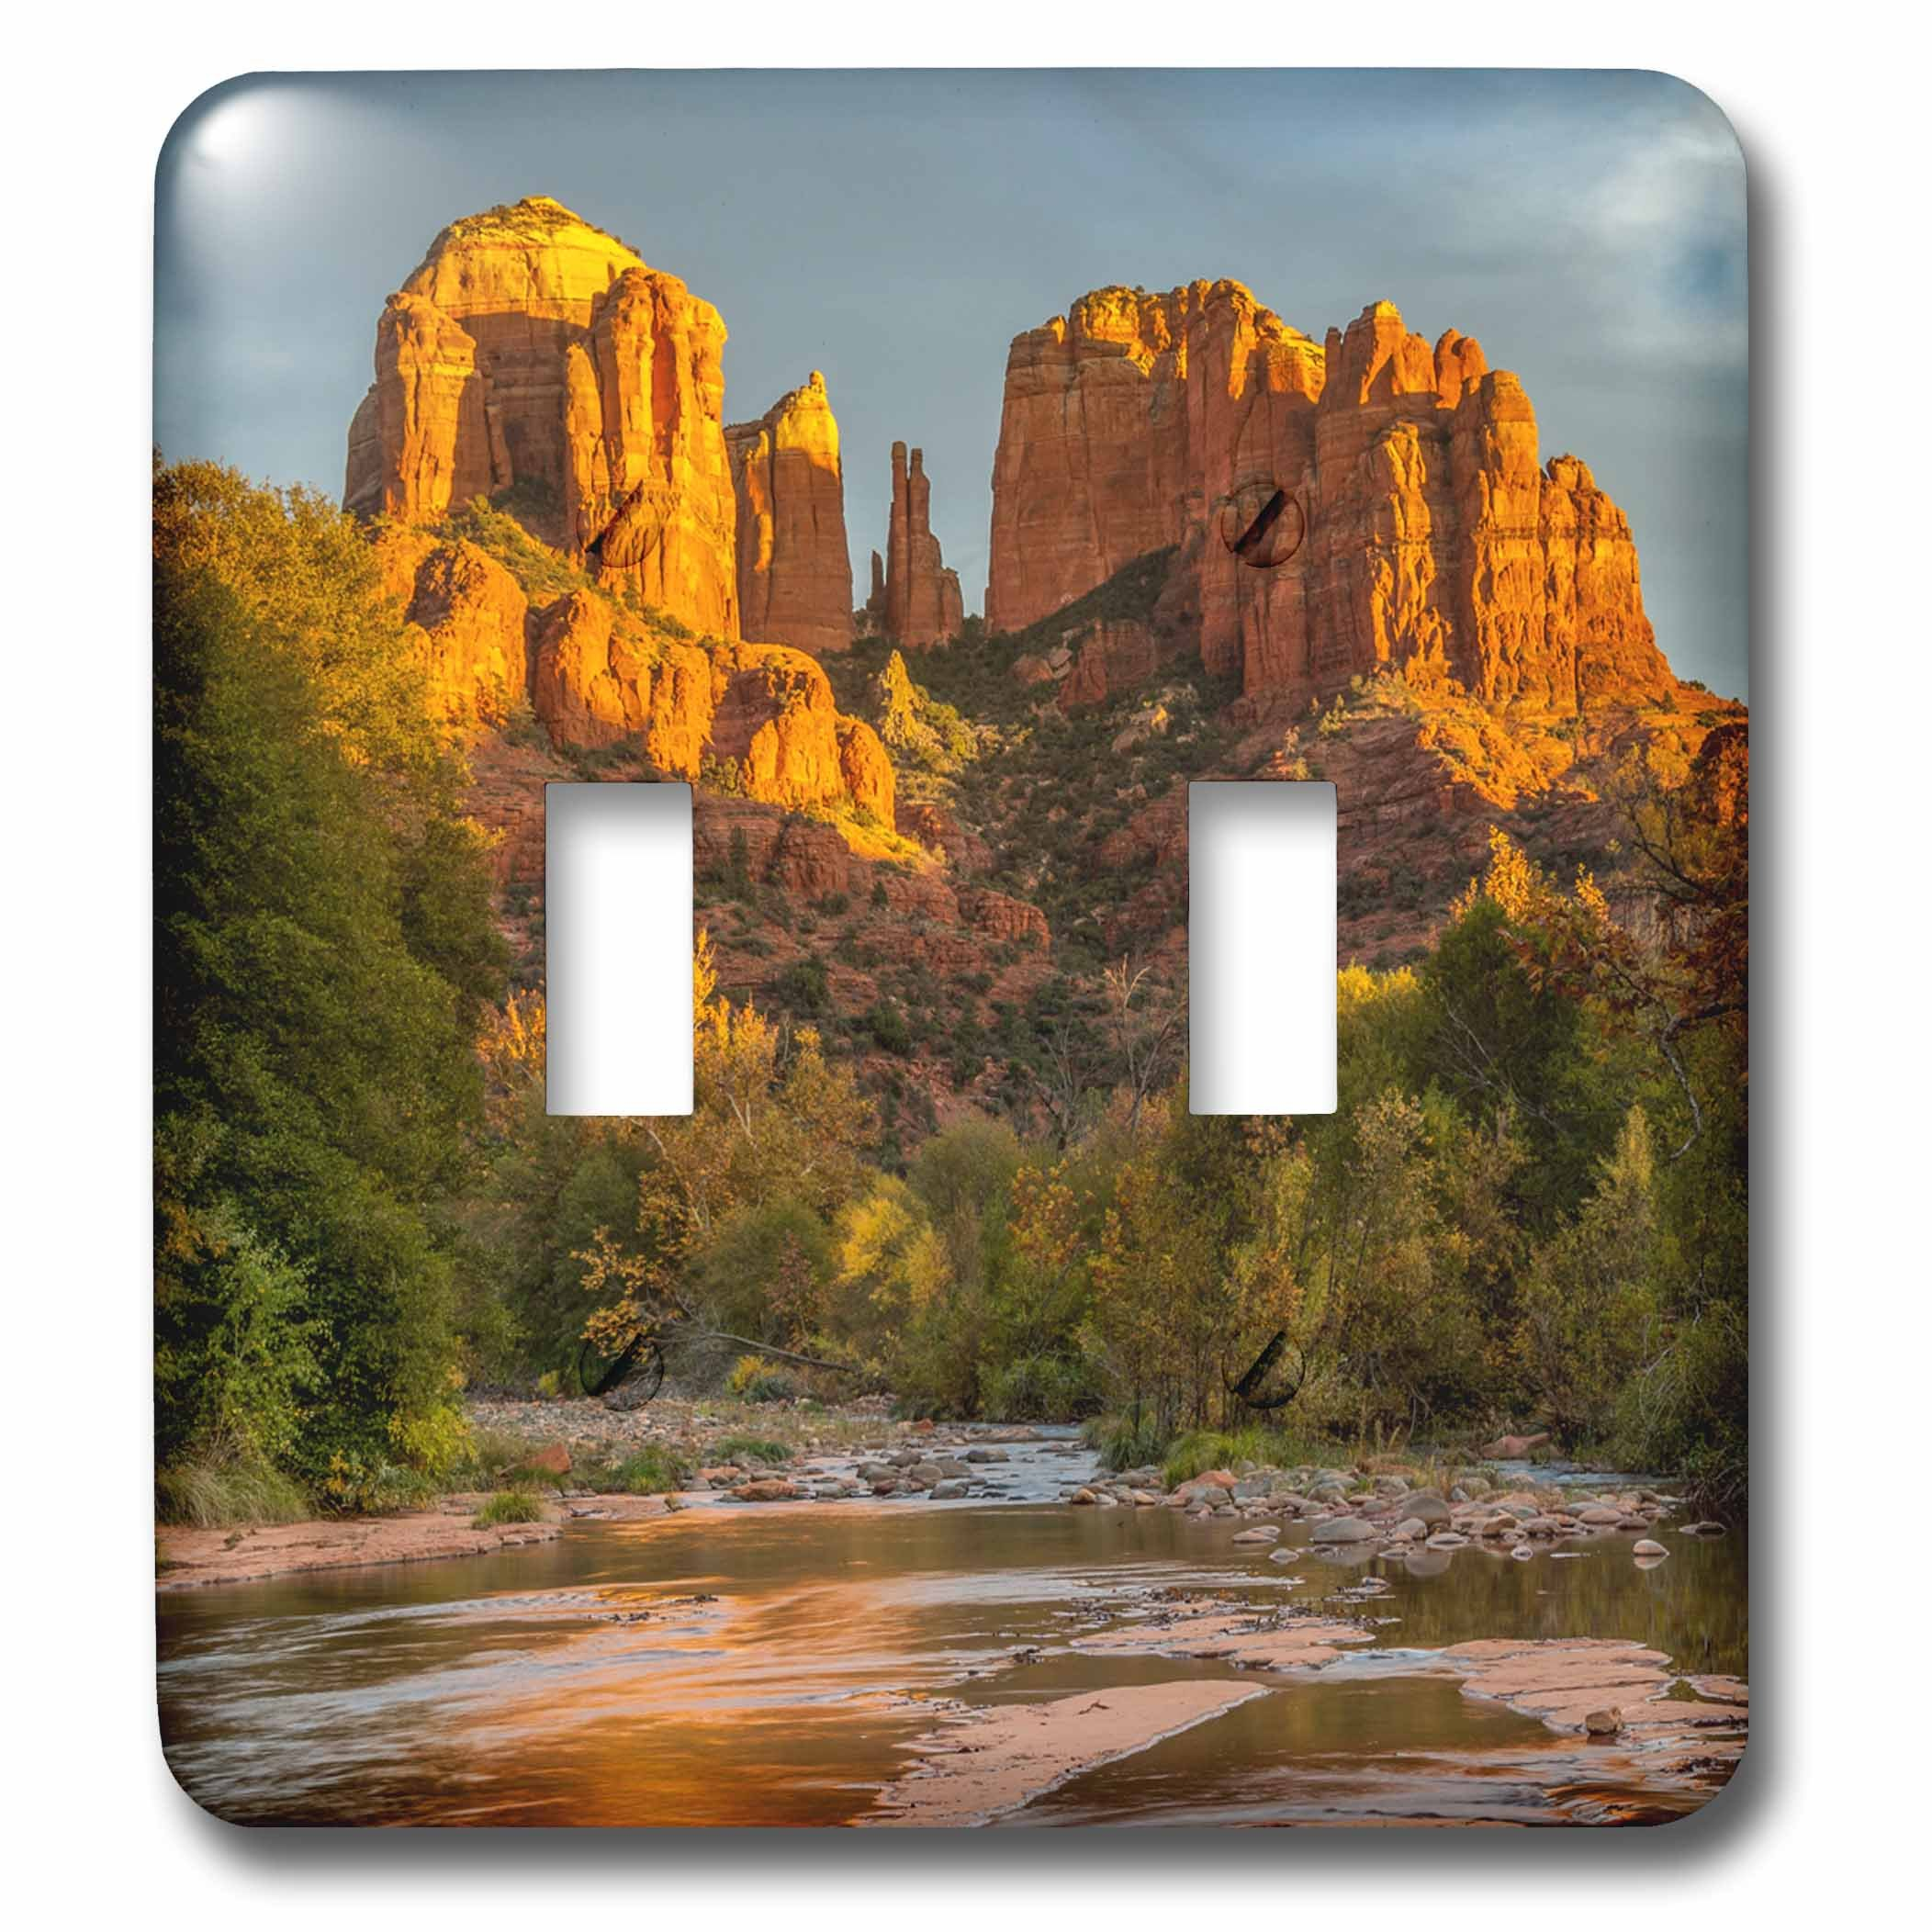 3dRose Danita Delimont - Deserts - USA, Arizona, Sedona, Cathedral Rock - Light Switch Covers - double toggle switch (lsp_278451_2) by 3dRose